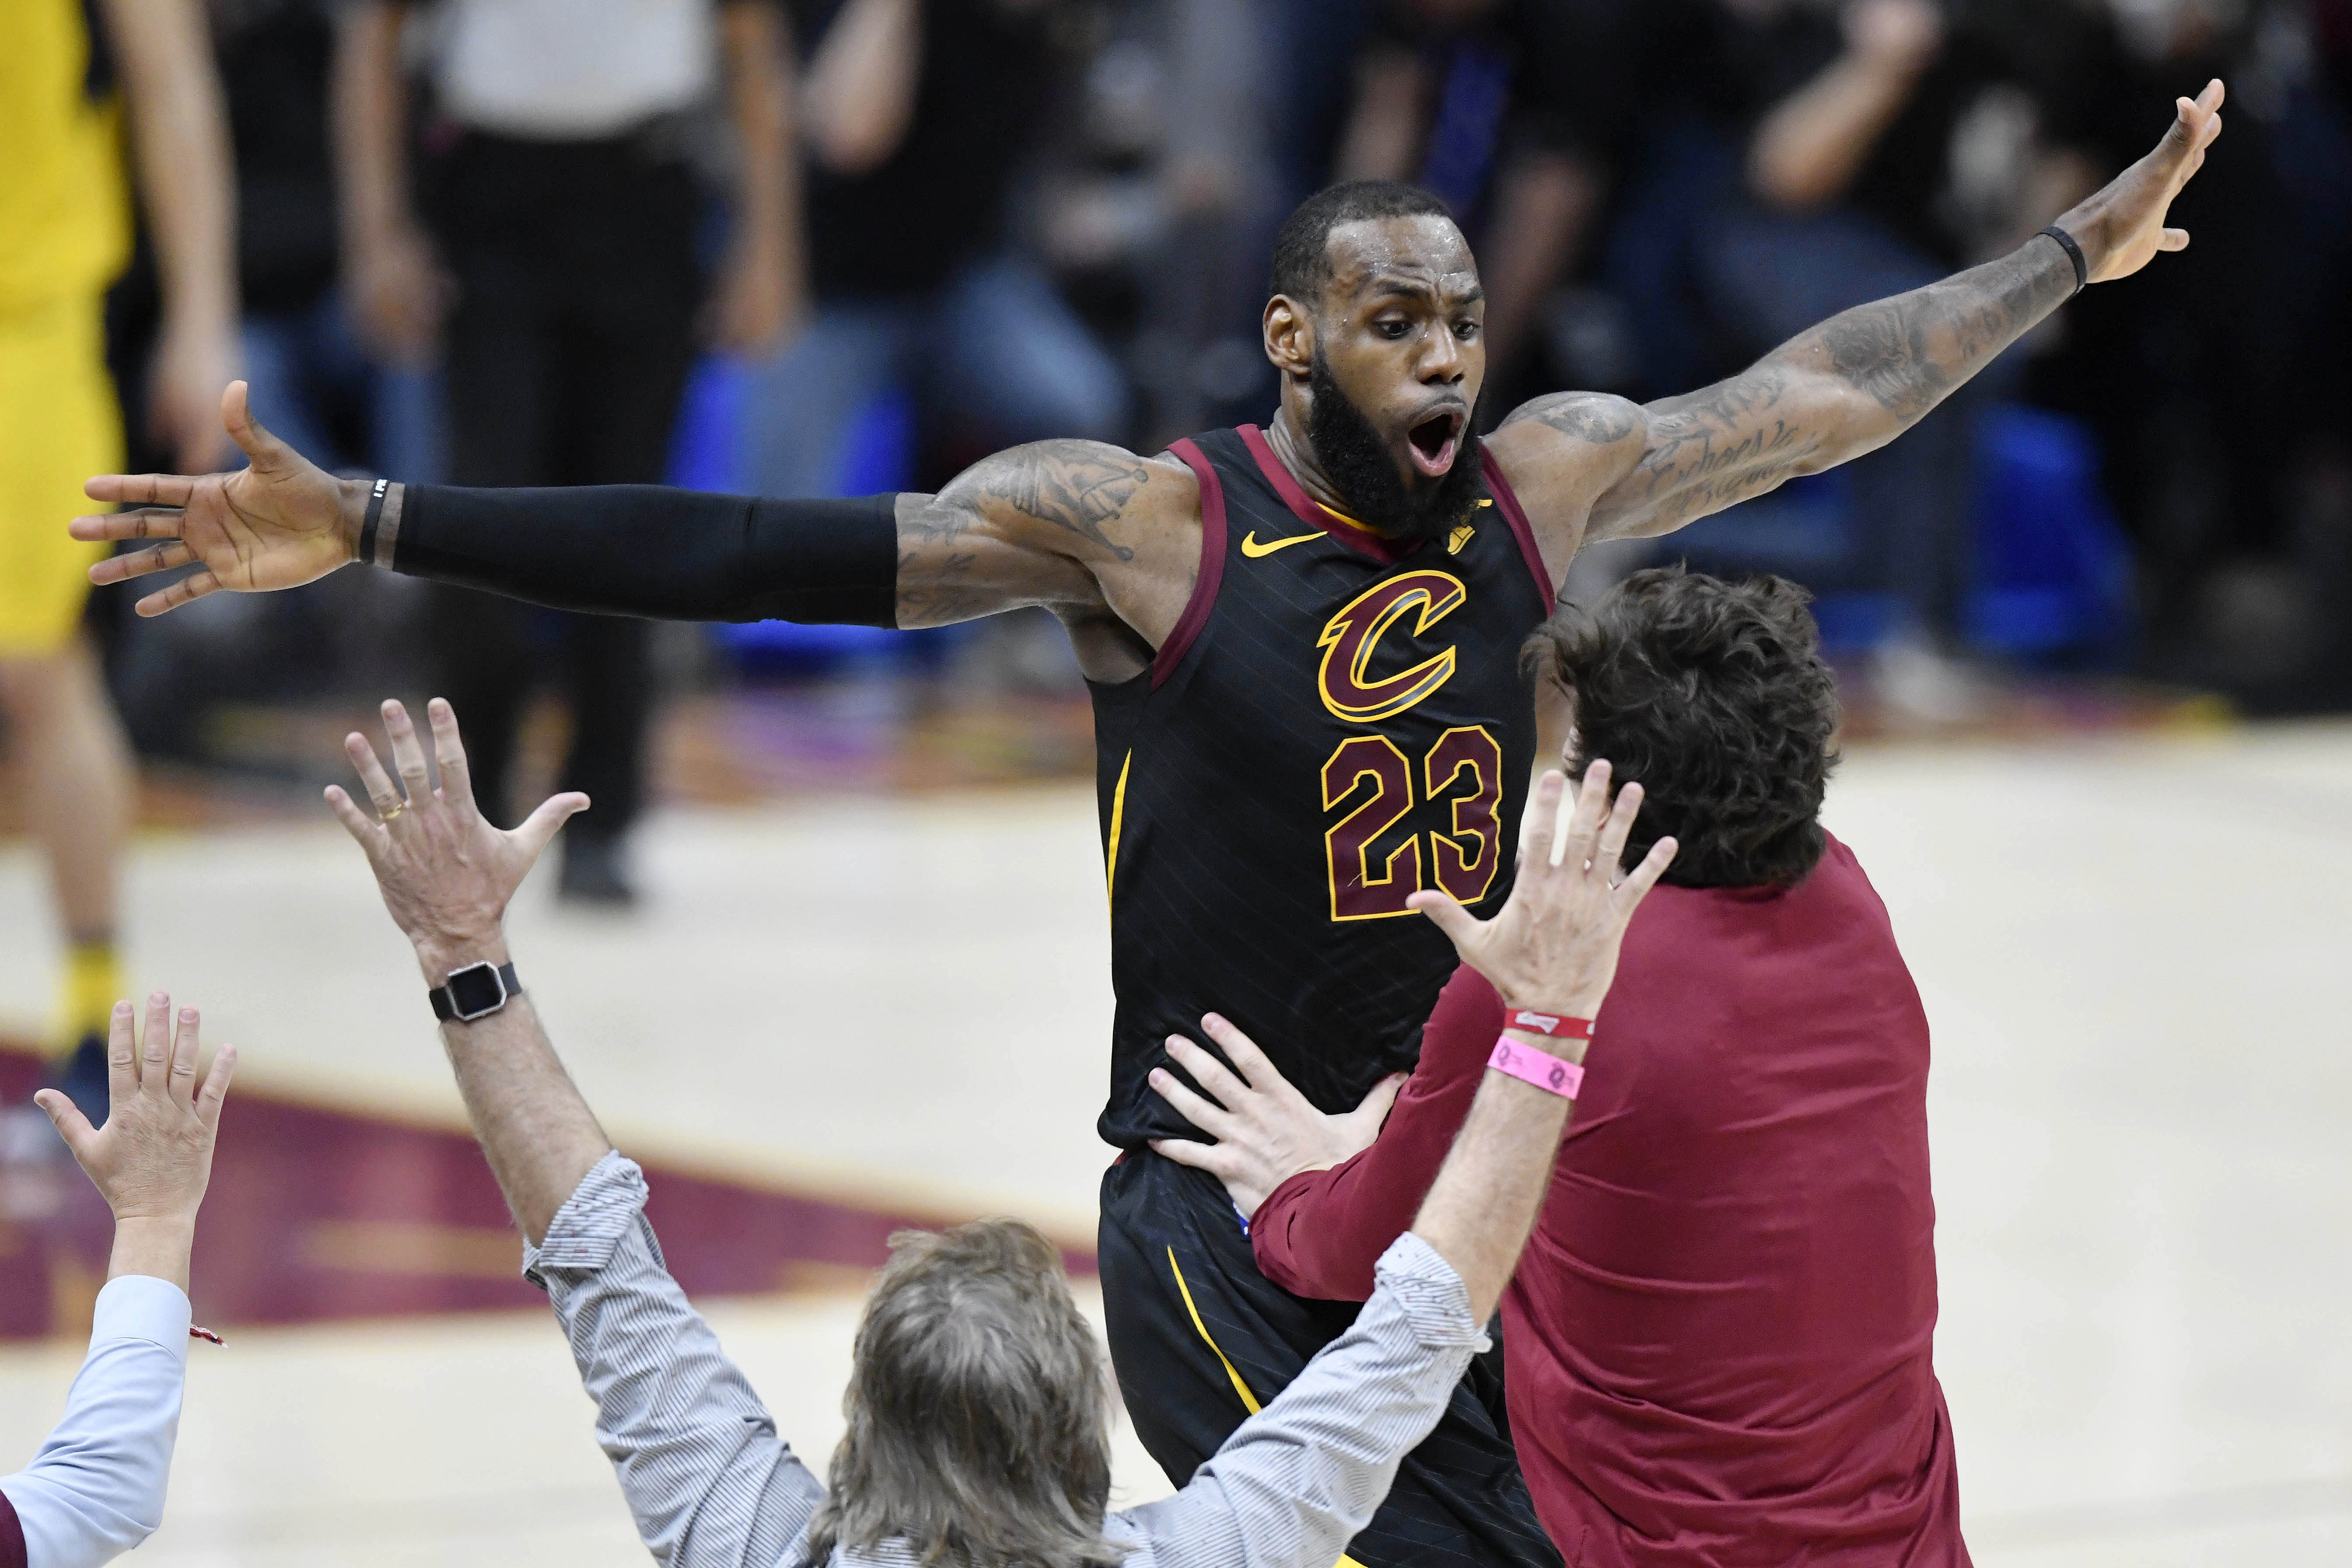 a13574d9333b LeBron James is putting the Cavaliers on his back like it s 2007 all over  again